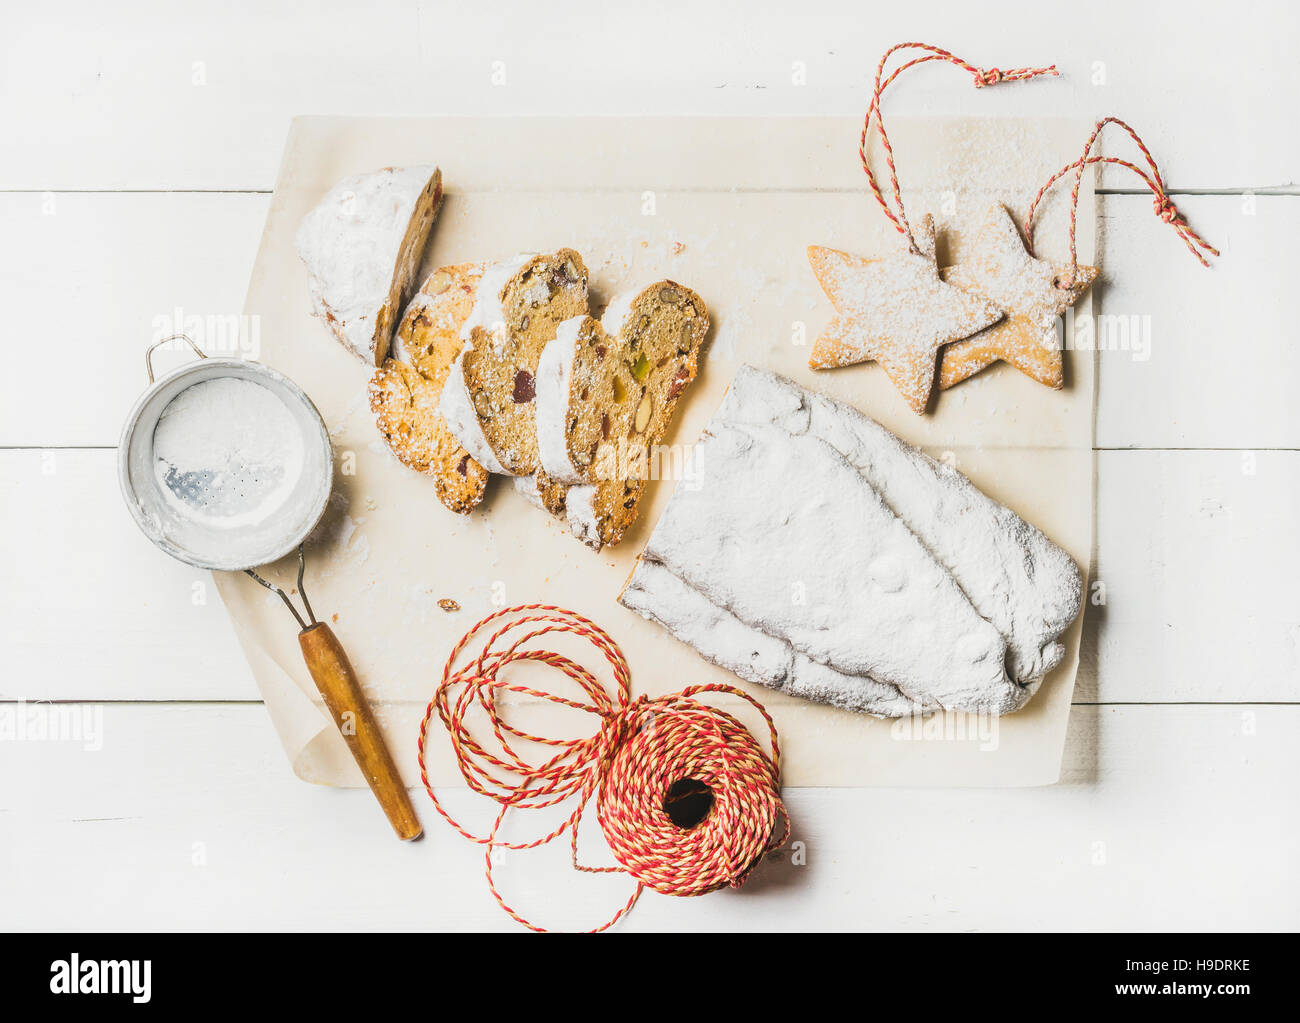 Traditional German Christmas cake Stollen cut in pieces, cookies, rope - Stock Image